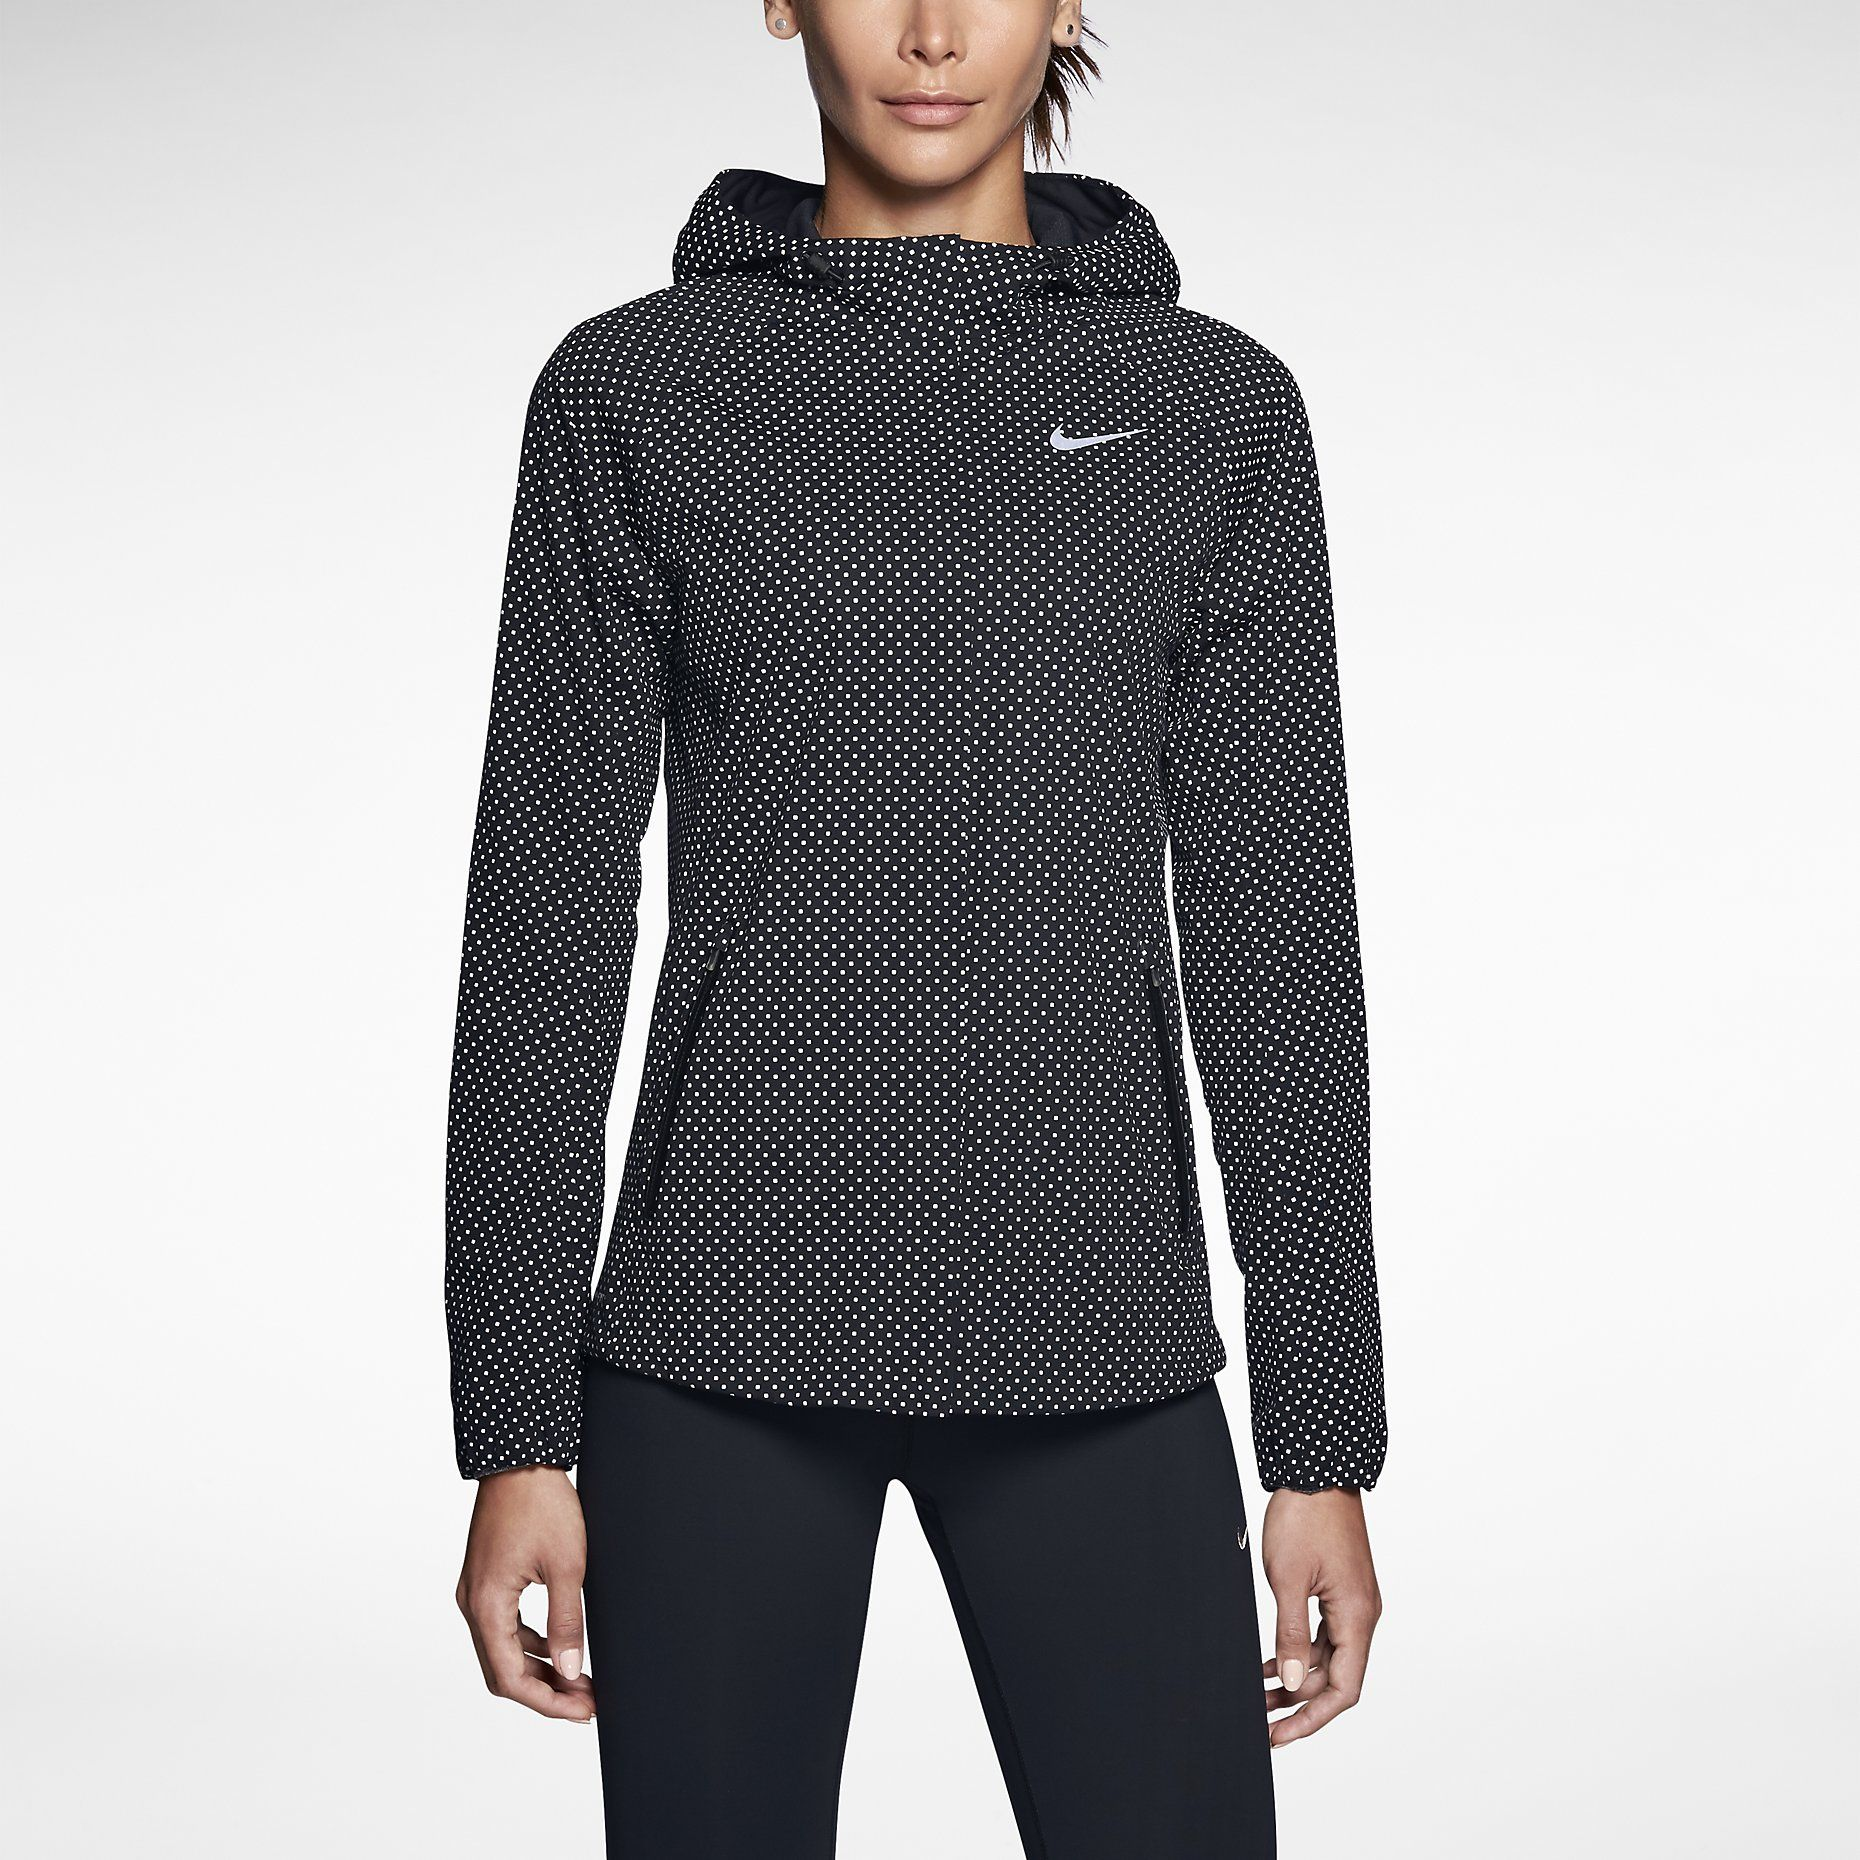 8543e4cfa Nike Shield Flash Max Women s Running Jacket. Nike Store